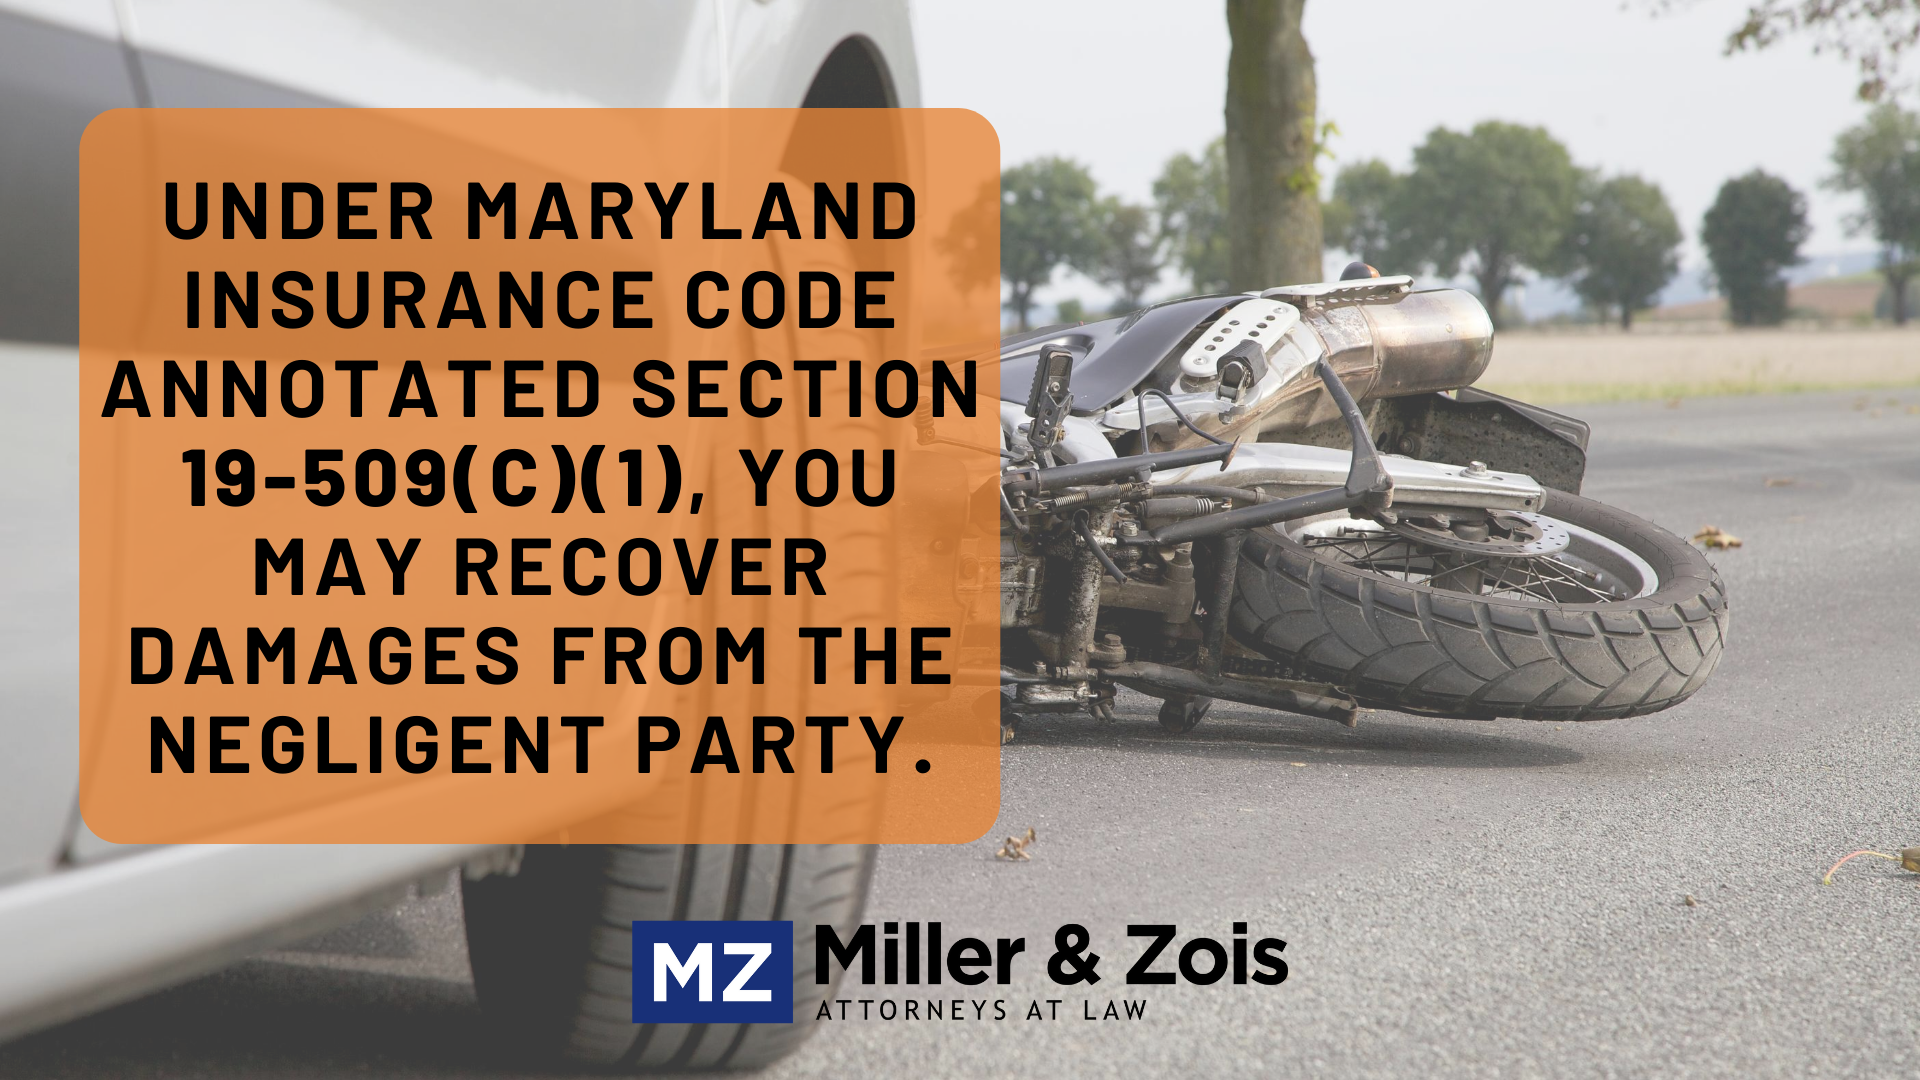 Maryland-Insurance-Code-Annotated-Section-19-509c1